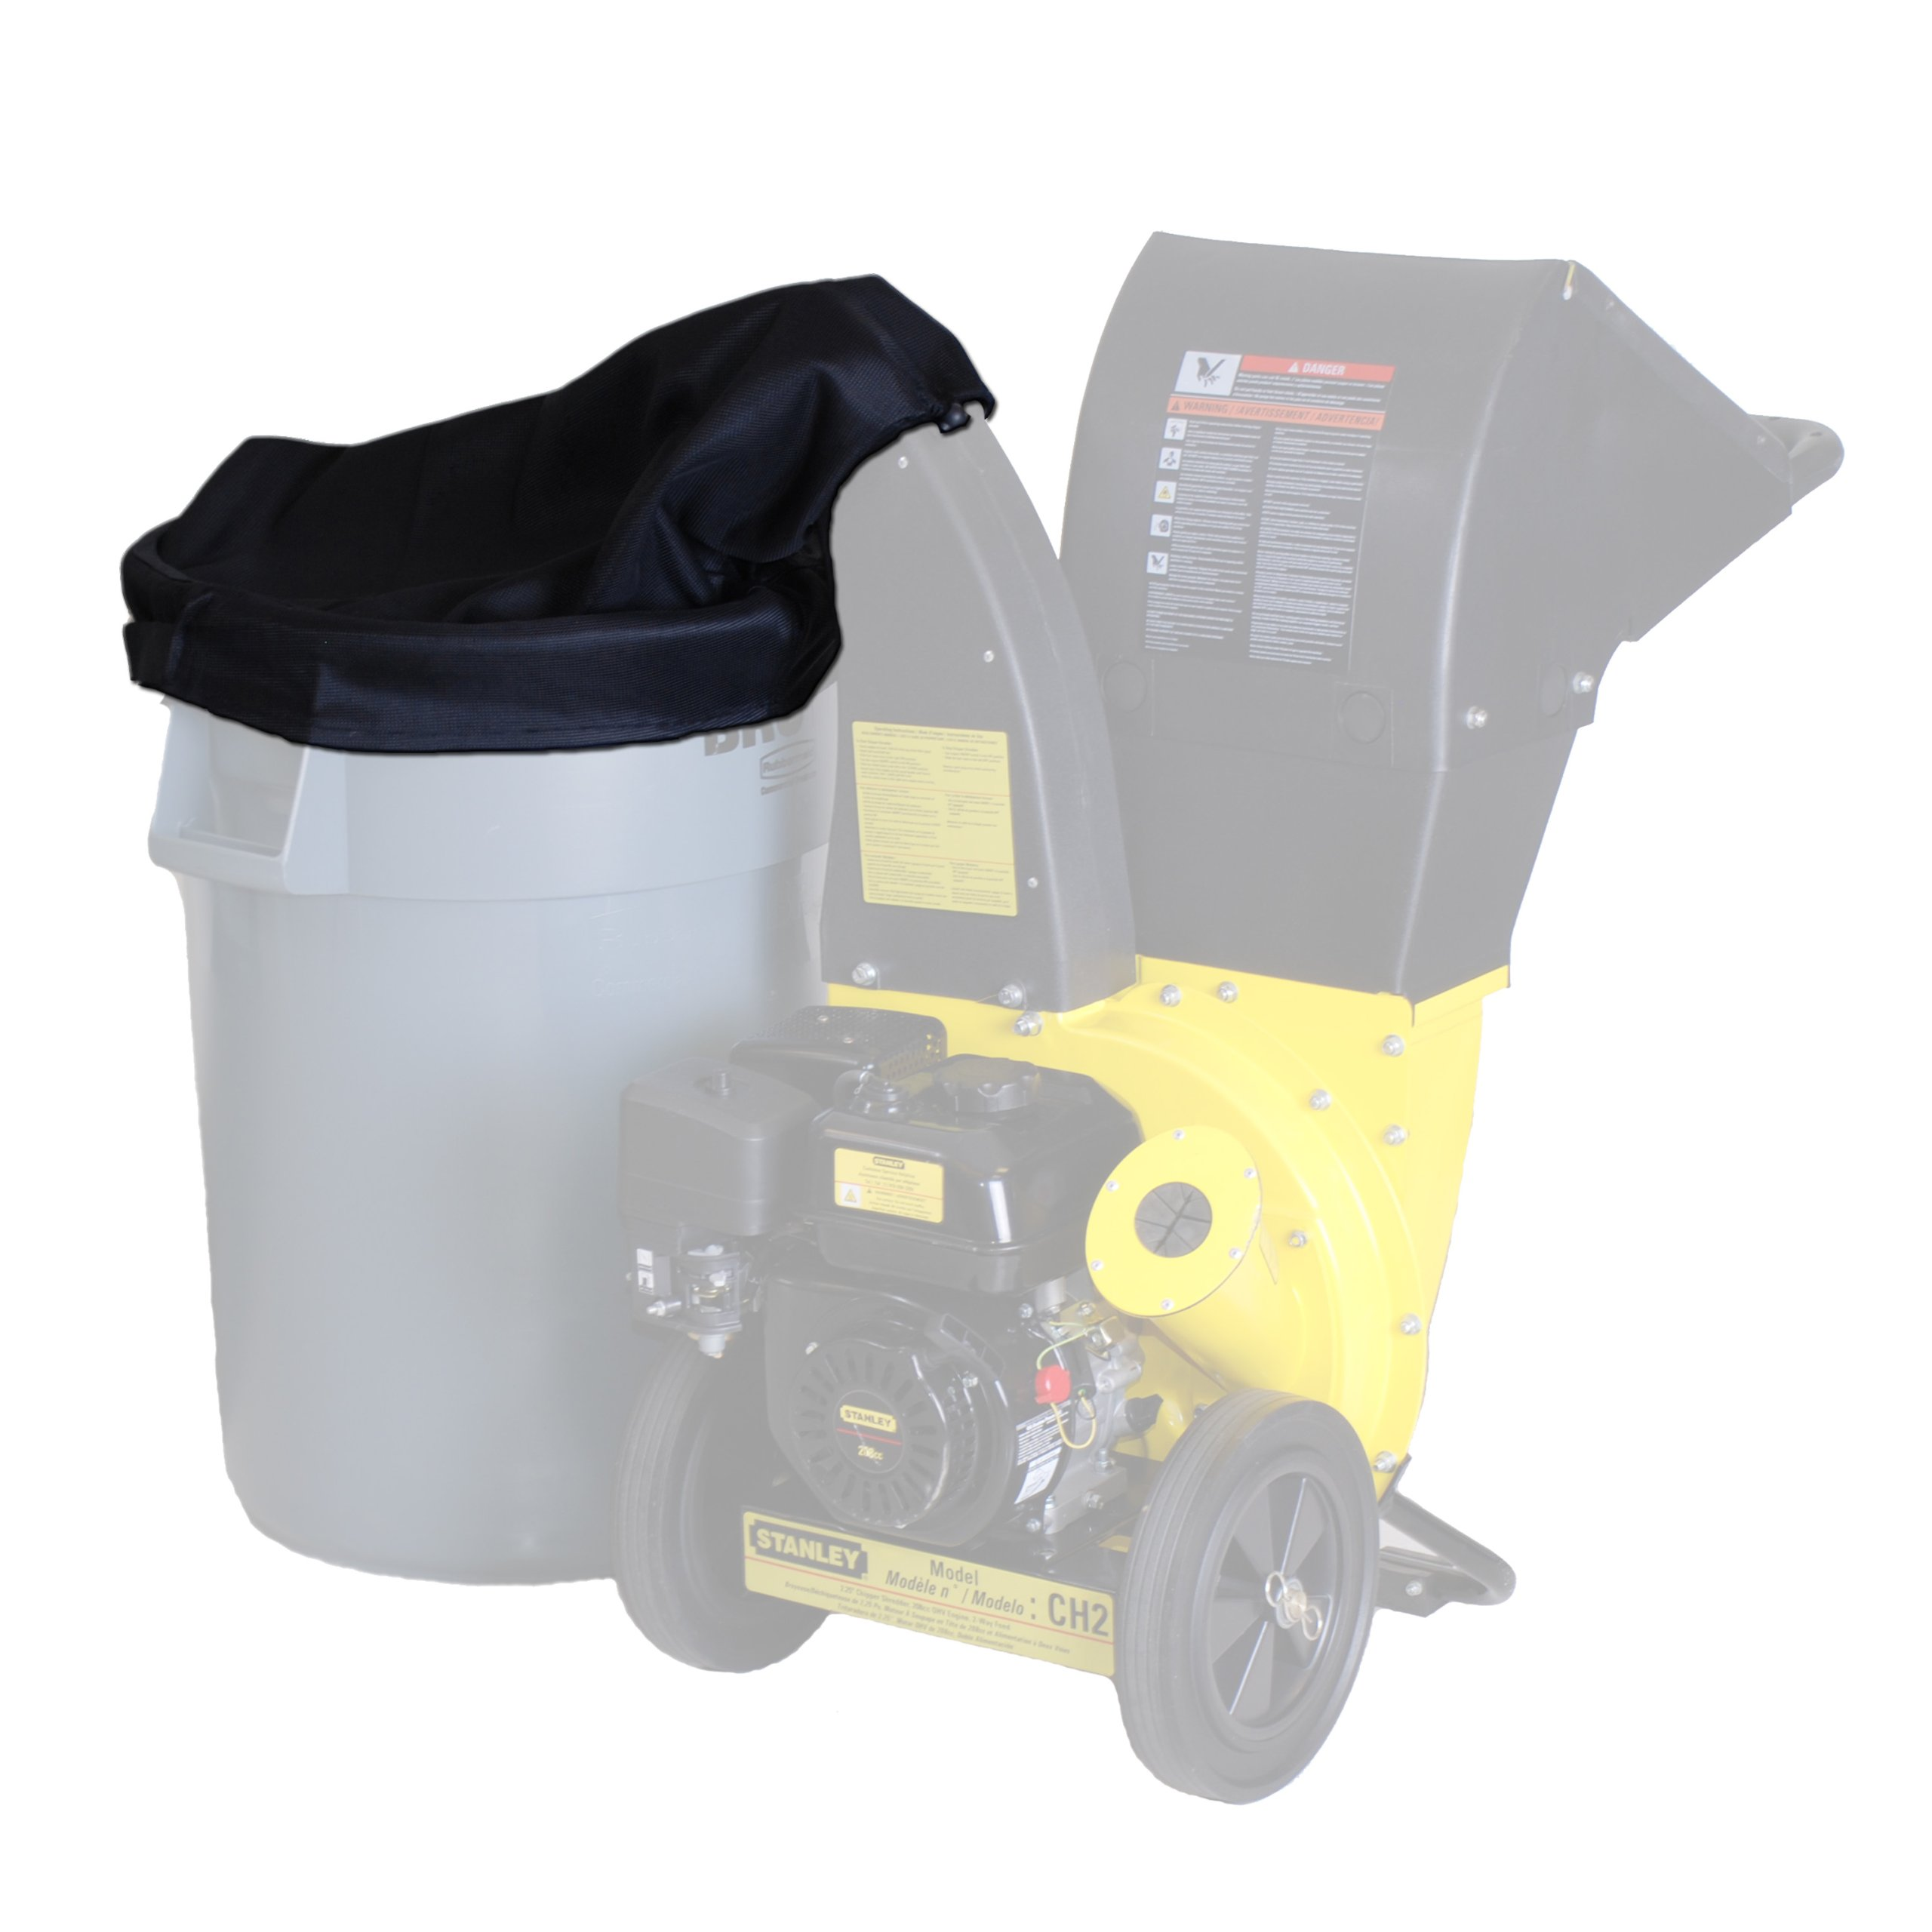 DEK CHBAGA Chipper Shredder Collection with Adapter